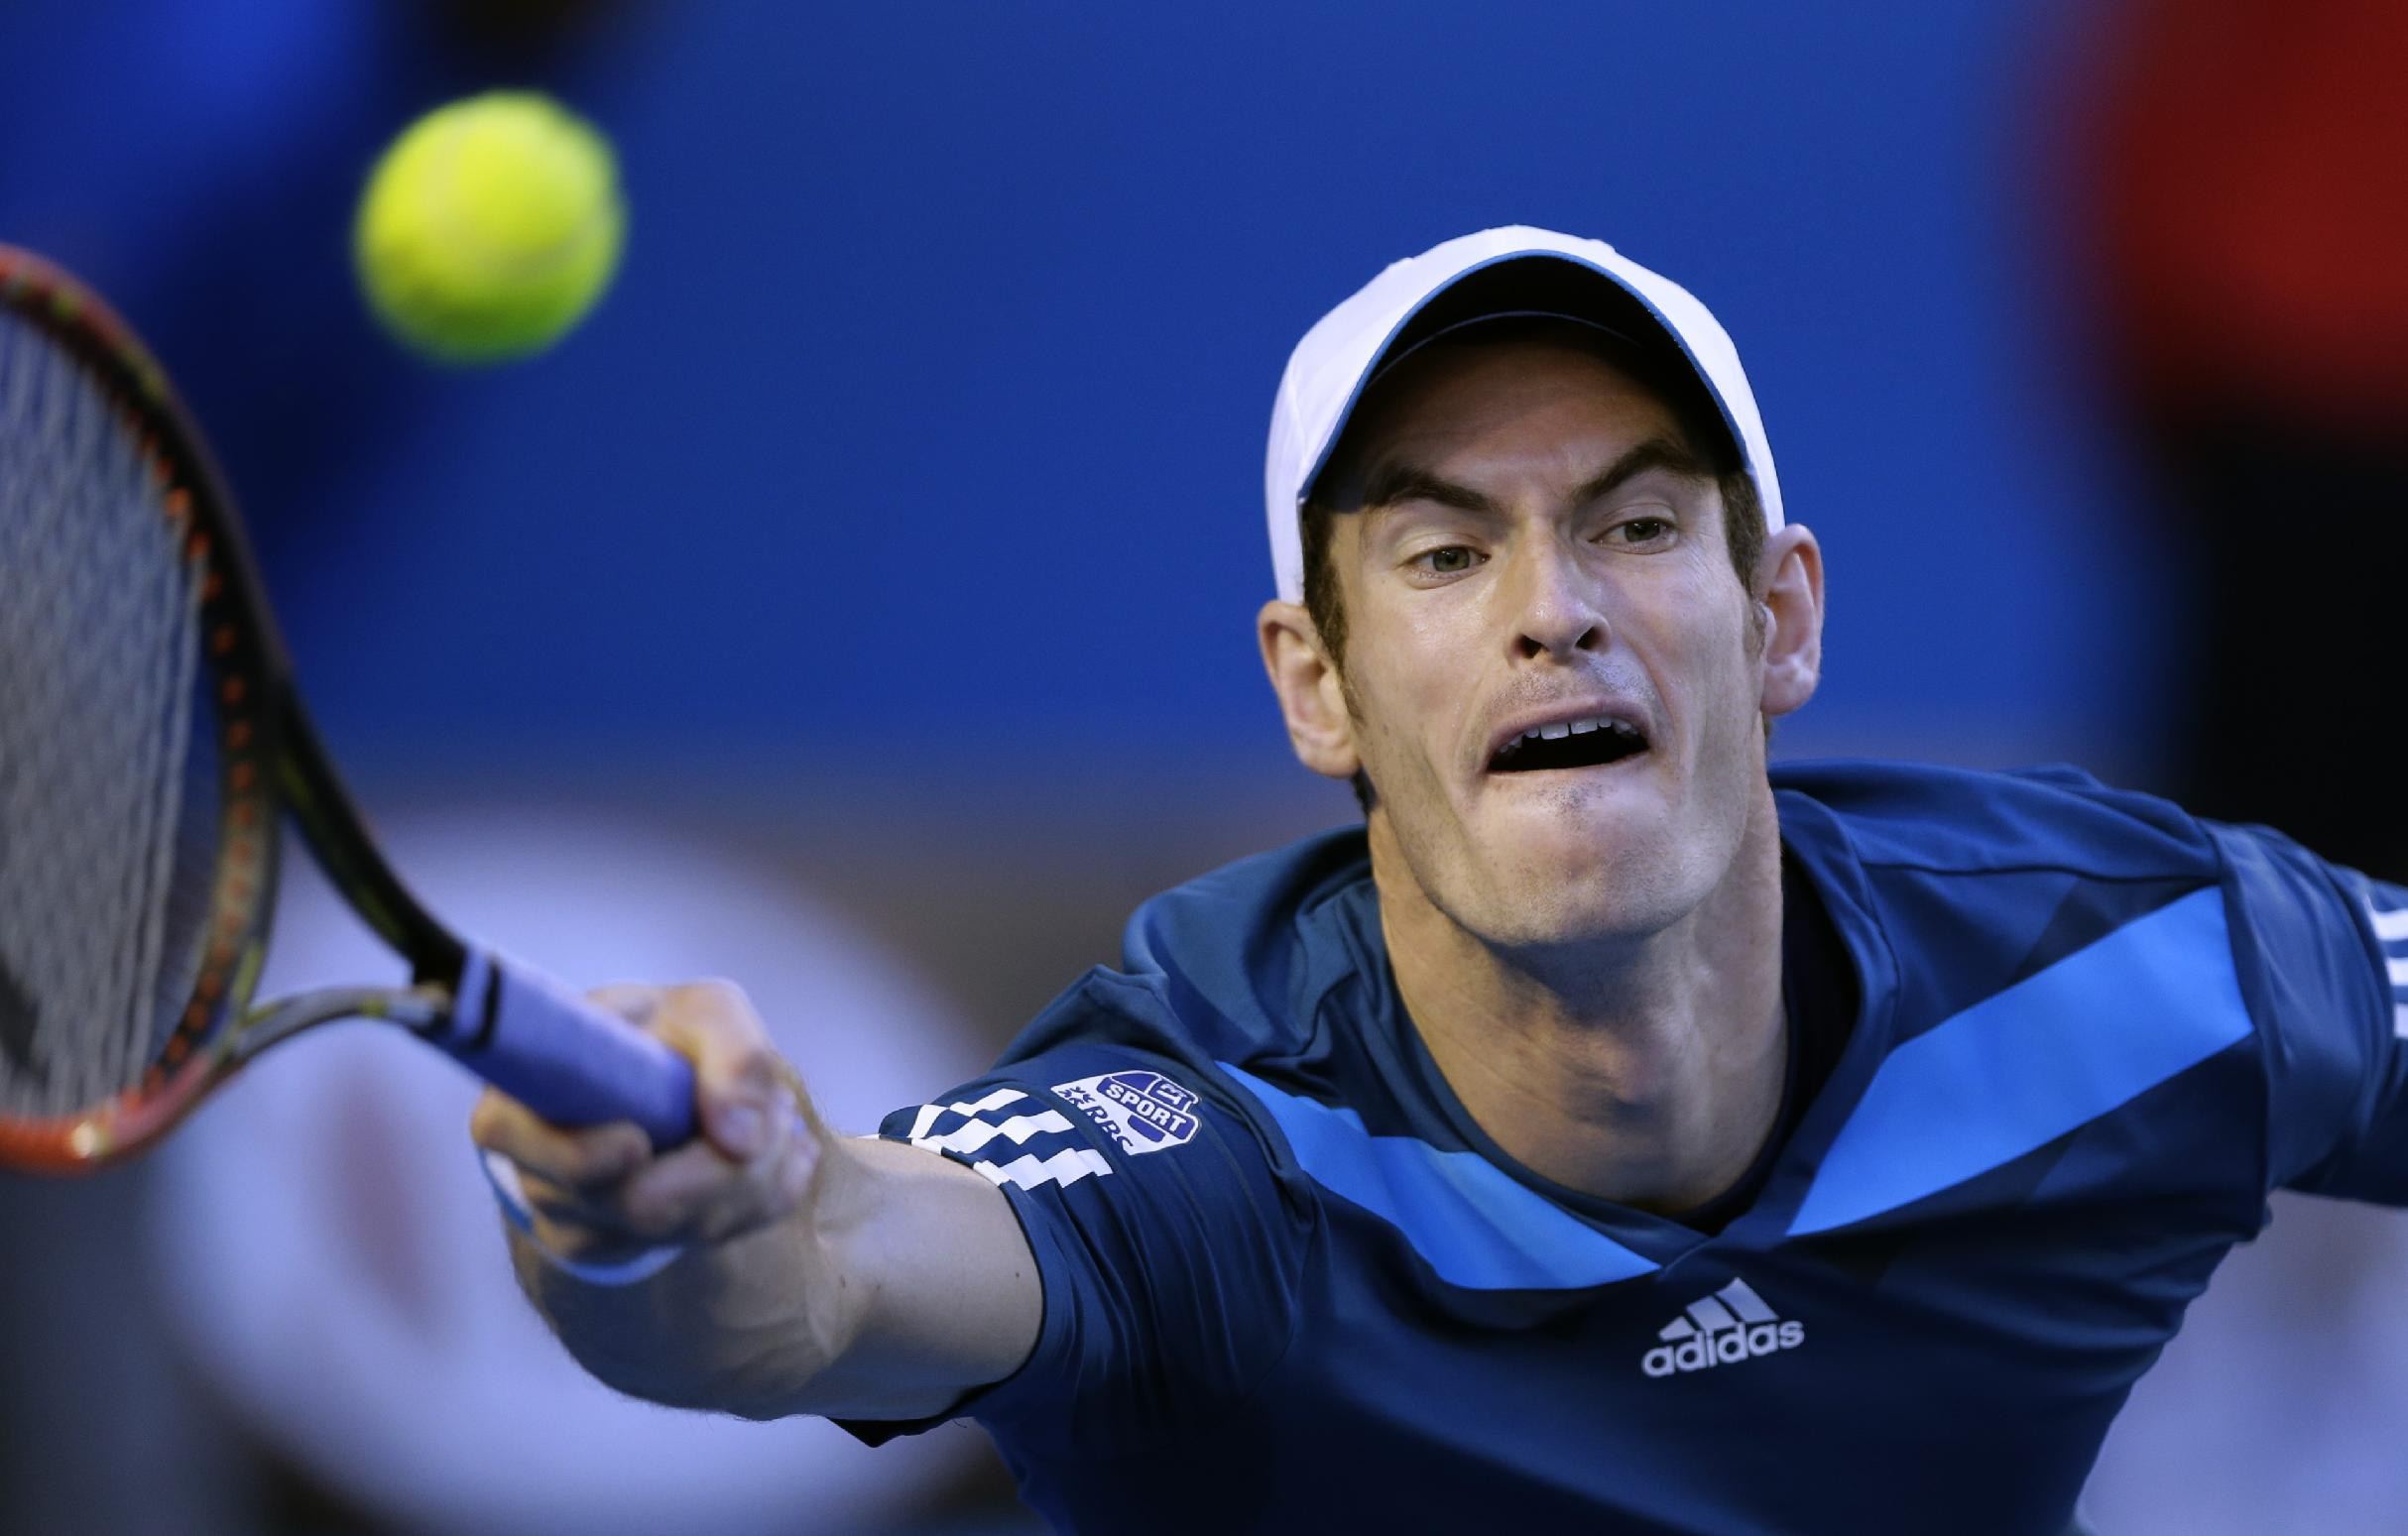 Andy Murray of Britain makes a forehand return to Roger Federer of Switzerland during their quarterfinal at the Australian Open tennis championship in Melbourne, Australia, Wednesday, Jan. 22, 2014